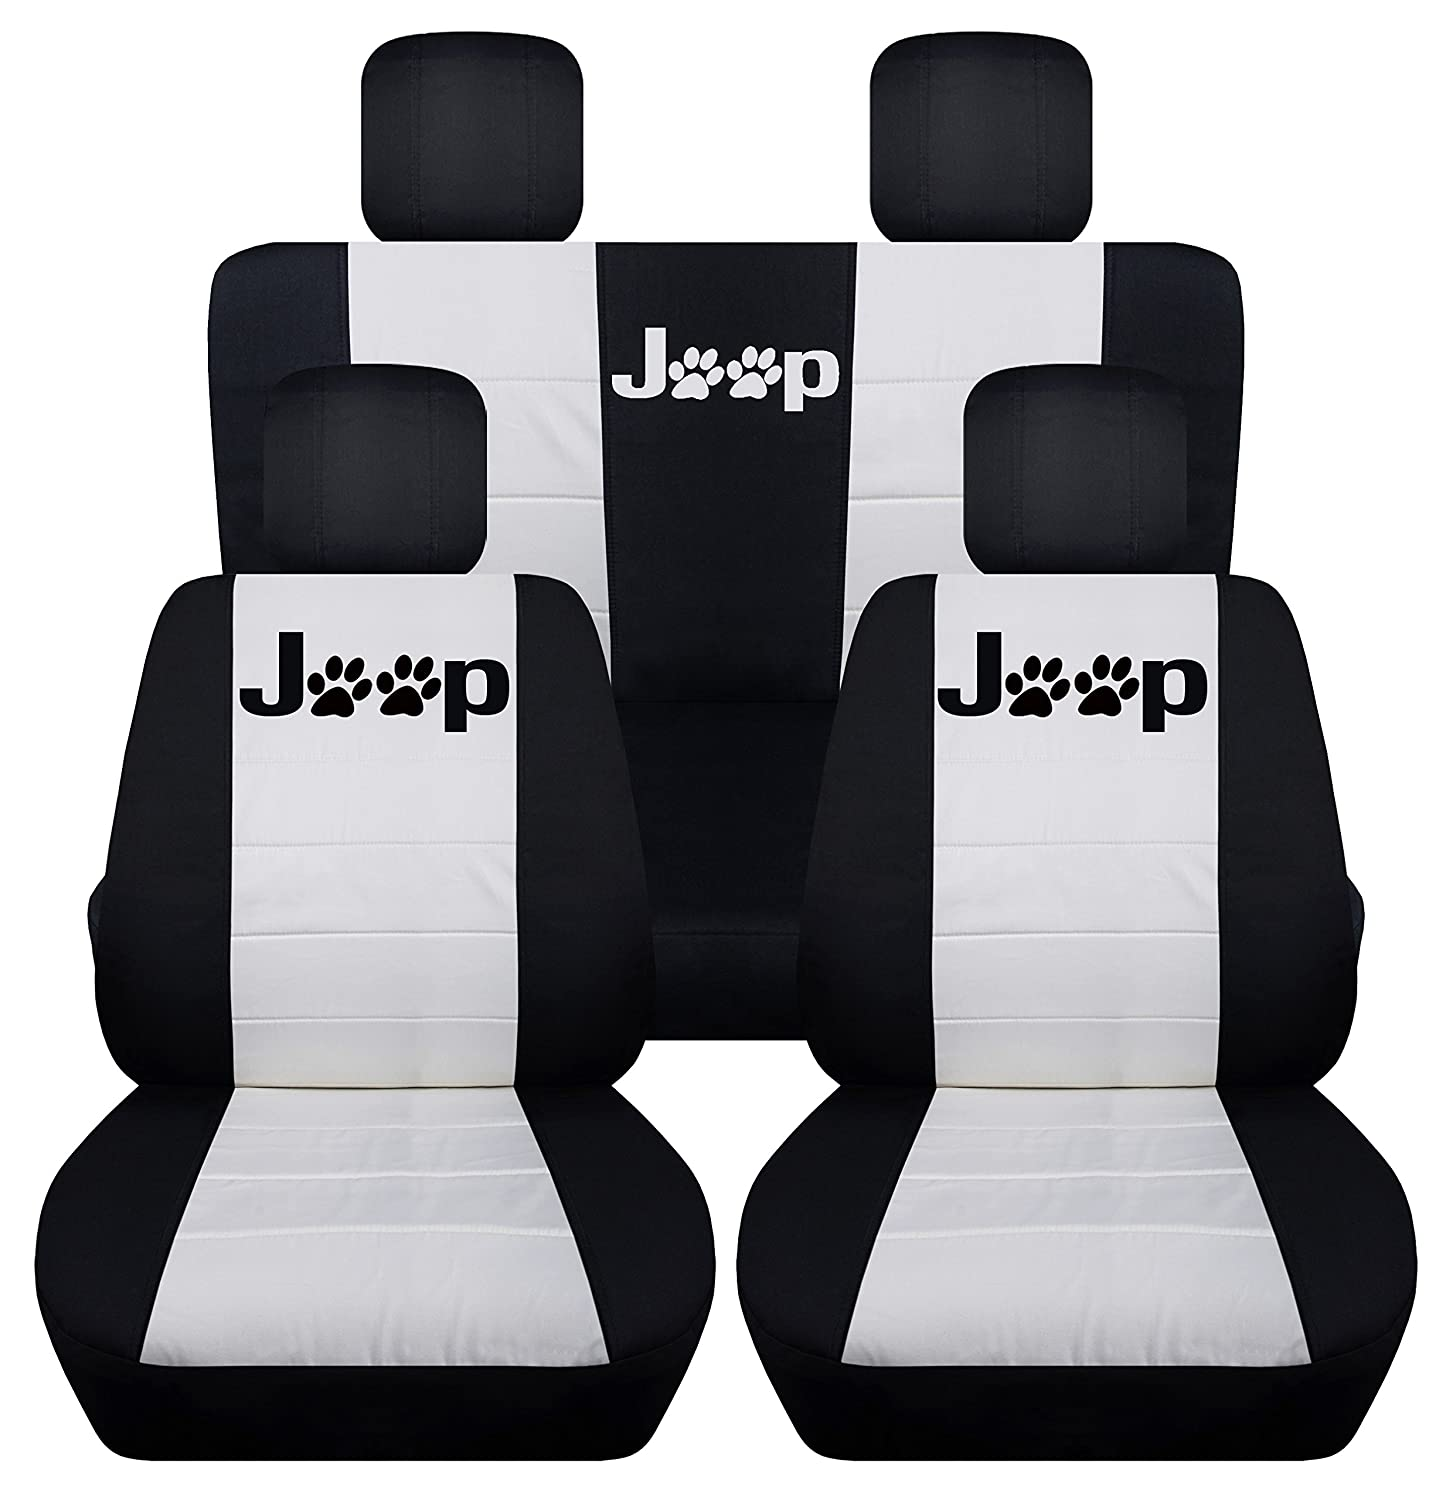 Side Airbags, Black Steel Grey Designcovers Fits 2011 to 2017 Jeep Wrangler 2 Door Paw Print Seat Covers 22 Color Options